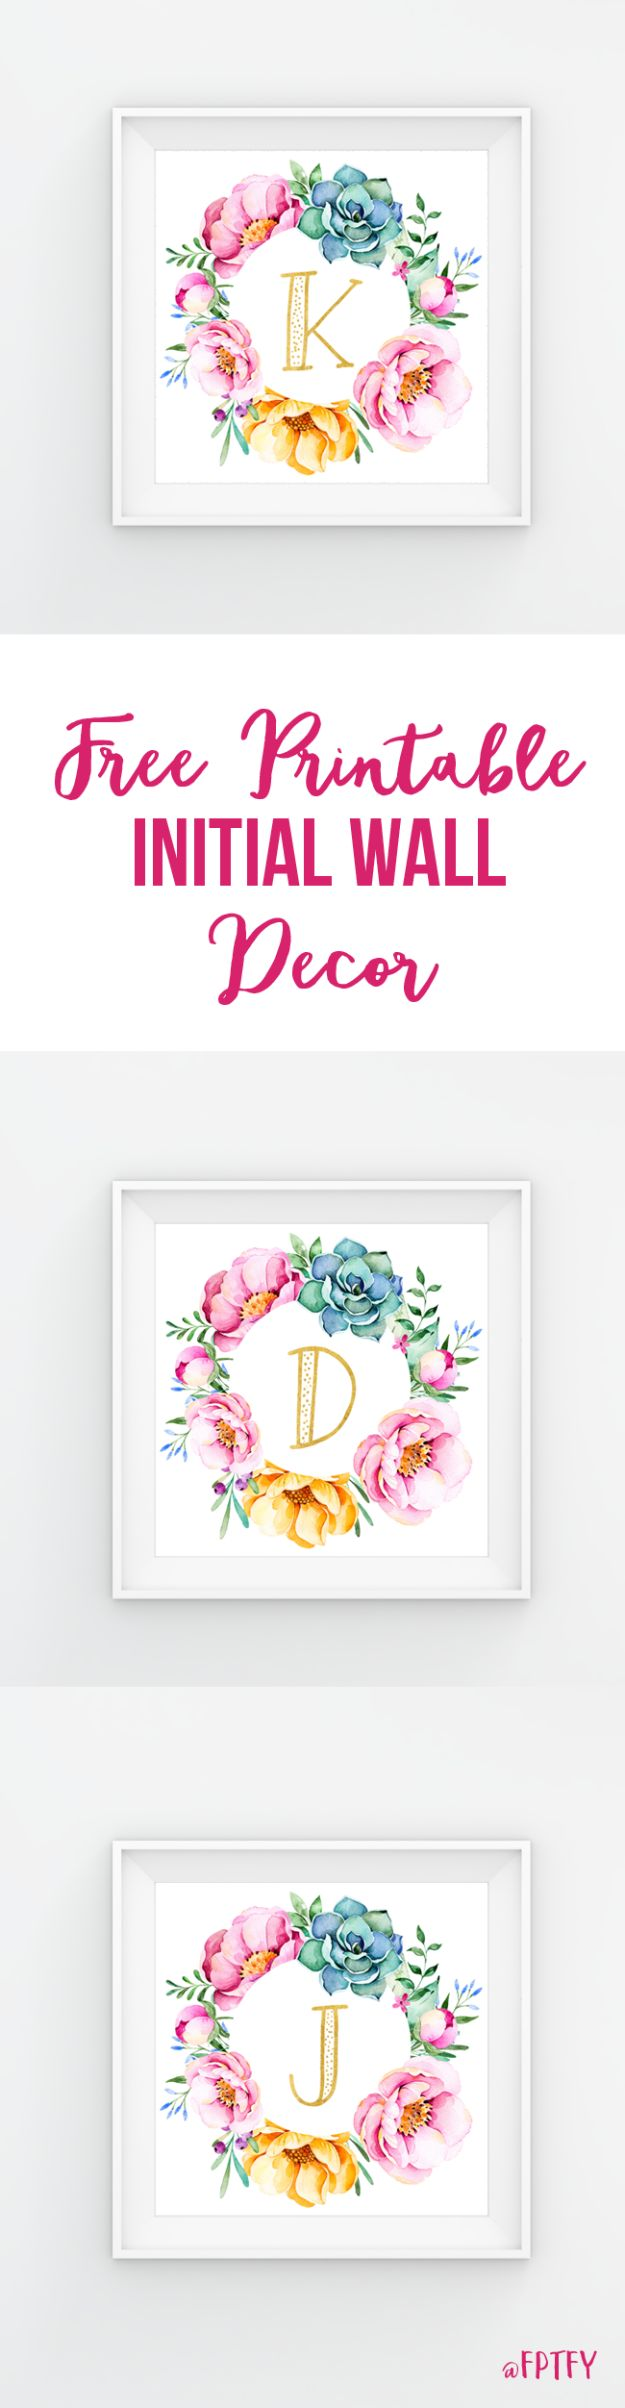 Best Free Printables For Your Walls - Free Printable Initial Wall Decor - Free Prints for Wall Art and Picture to Print for Home and Bedroom Decor - Crafts to Make and Sell With Ideas for the Home, Organization #diy